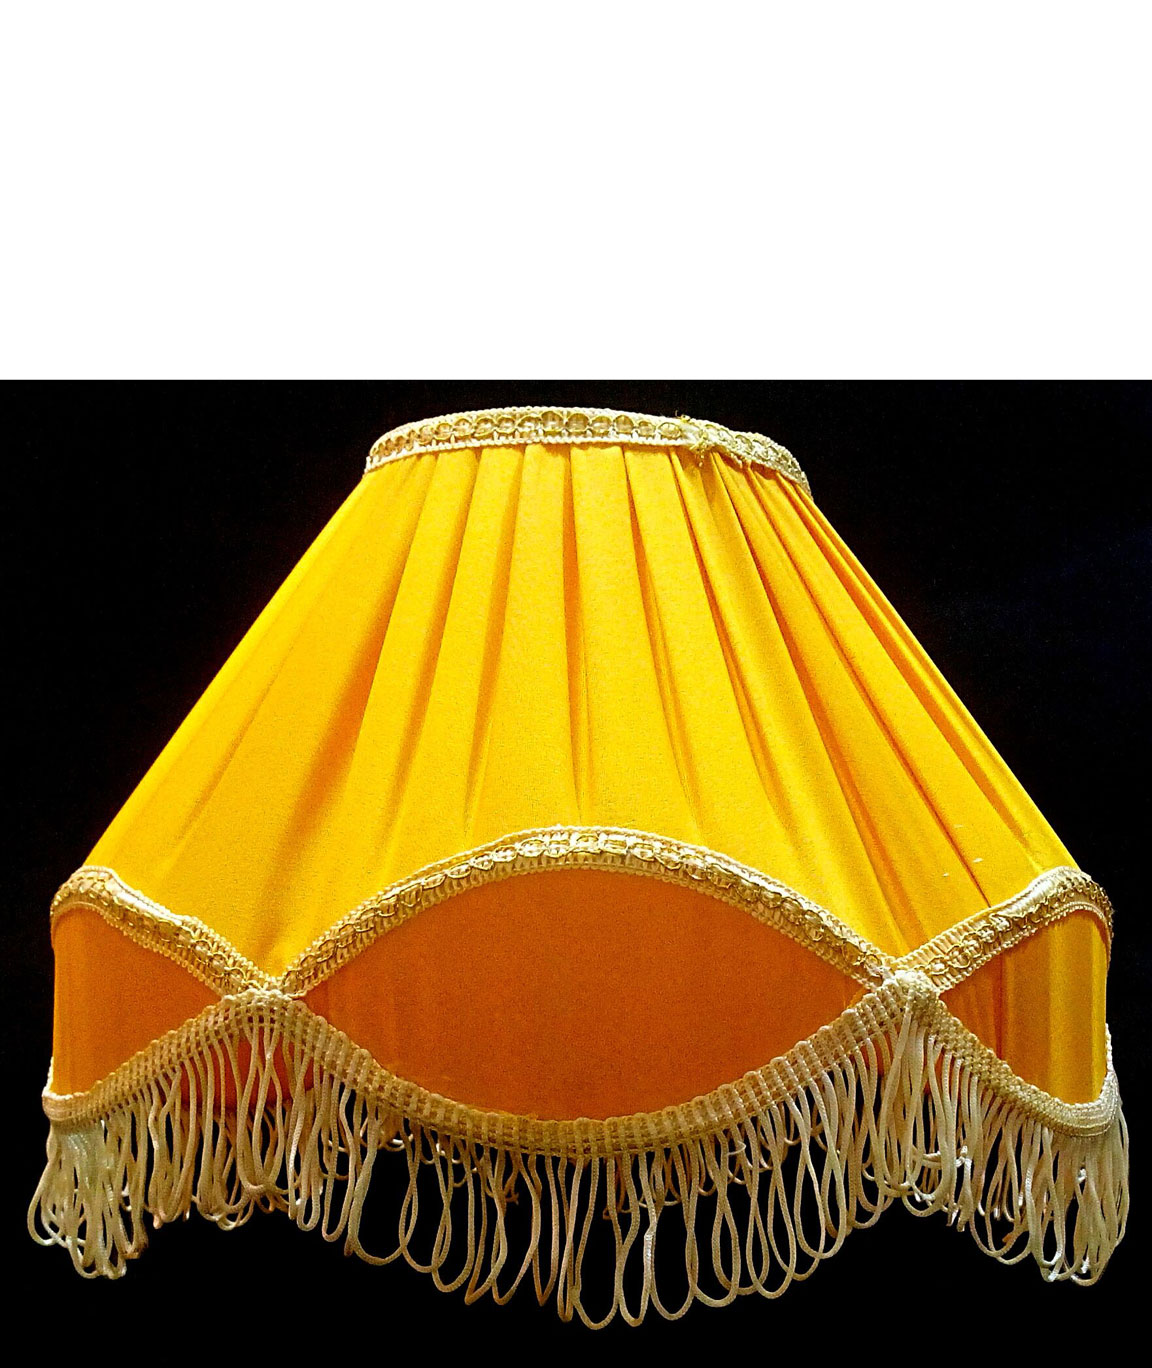 RDC 10 Inches Round Pleated Yellow with Golden Lace Border with Frills Lamp Shade for Table Lamp